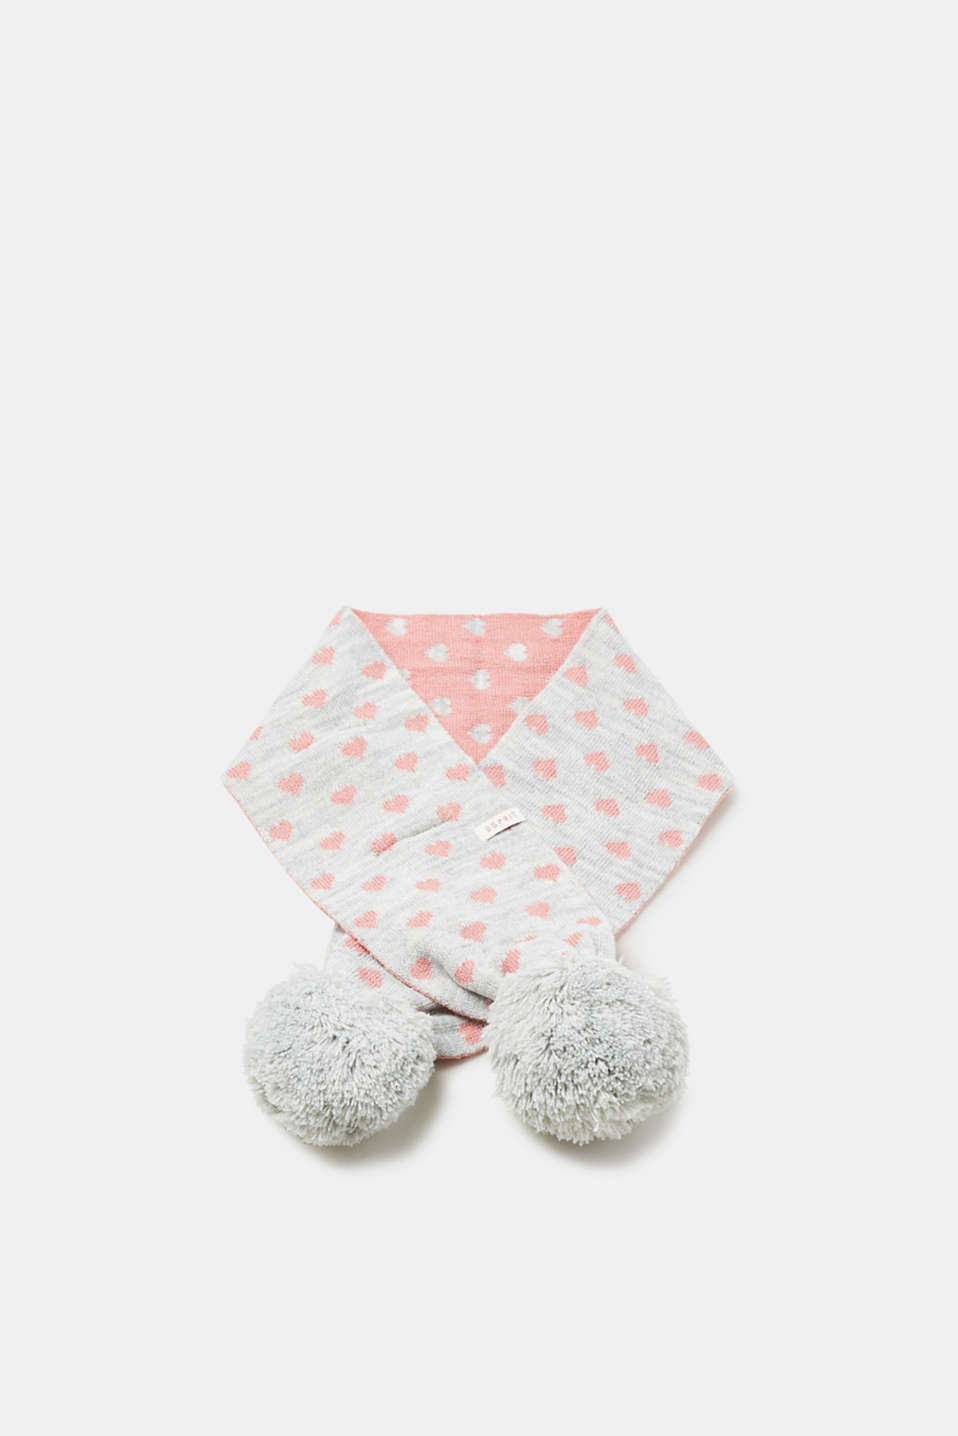 Esprit - Knit scarf with a heart pattern and pompoms